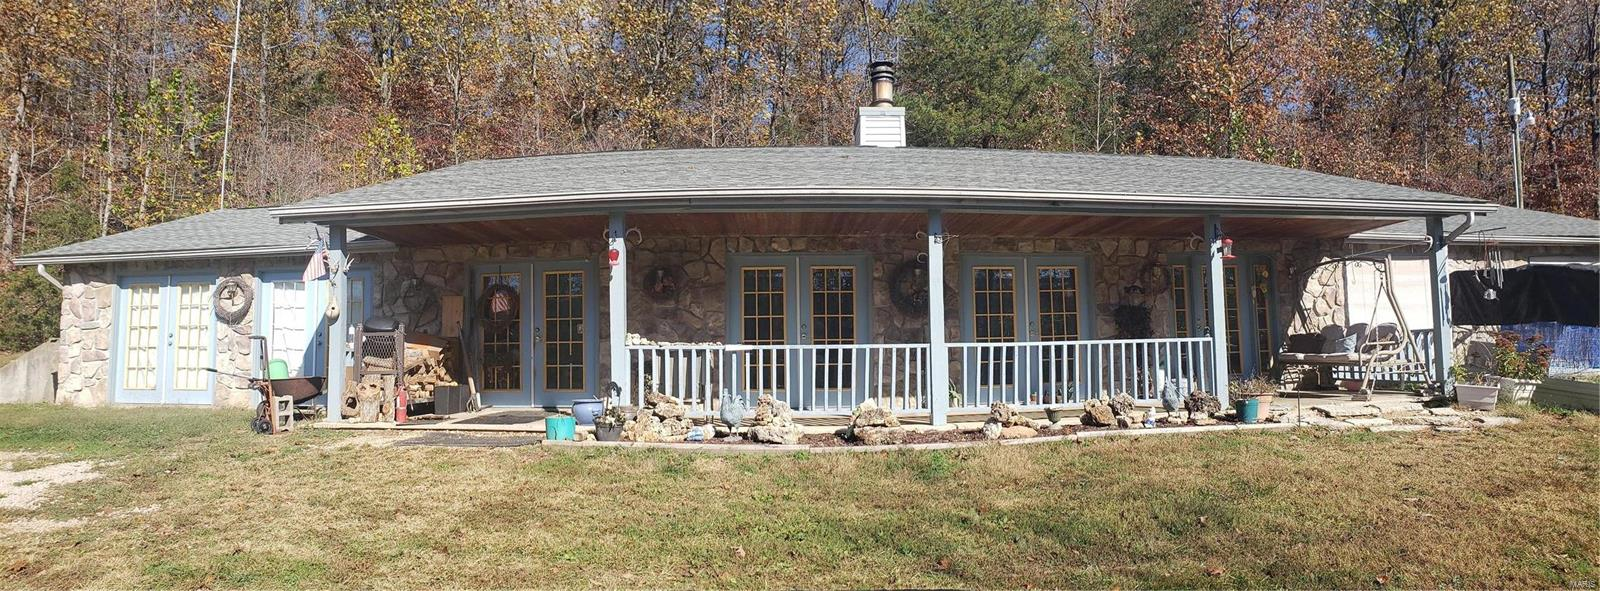 920 Possum Hollow Property Photo - Bourbon, MO real estate listing